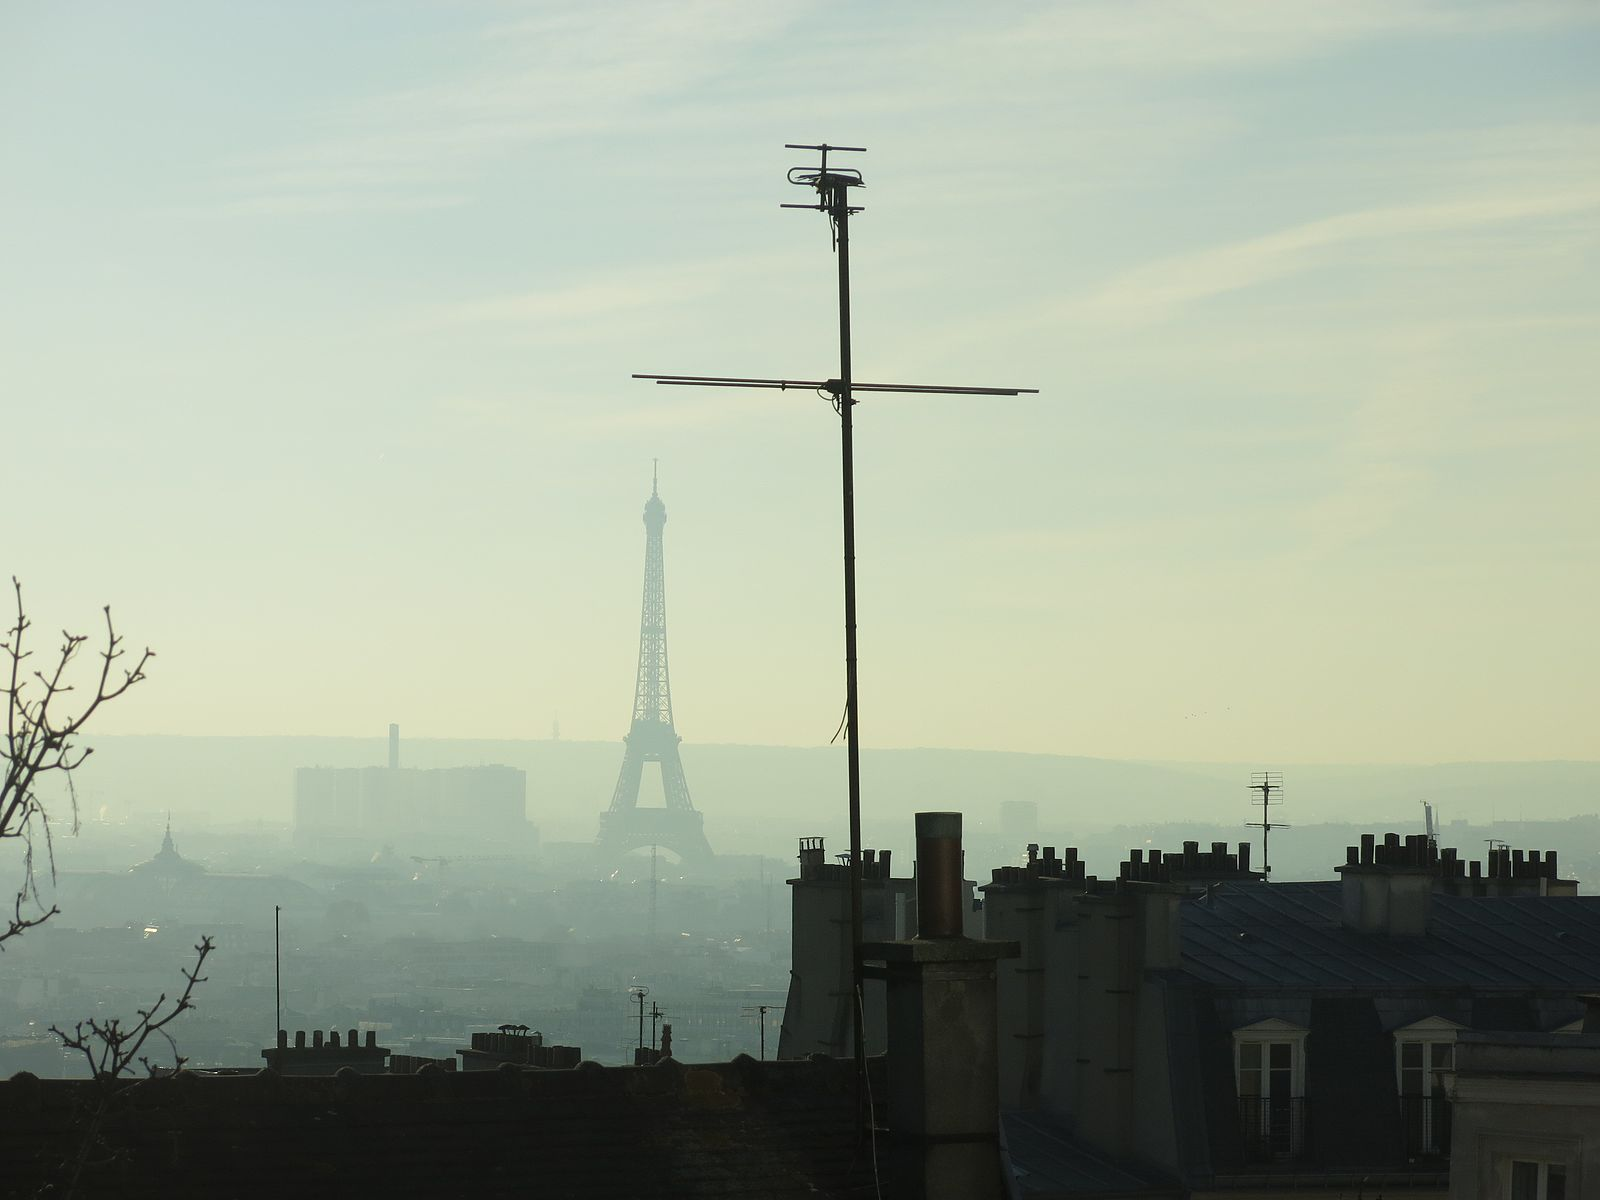 La pollution de l'air tue davantage que le tabac